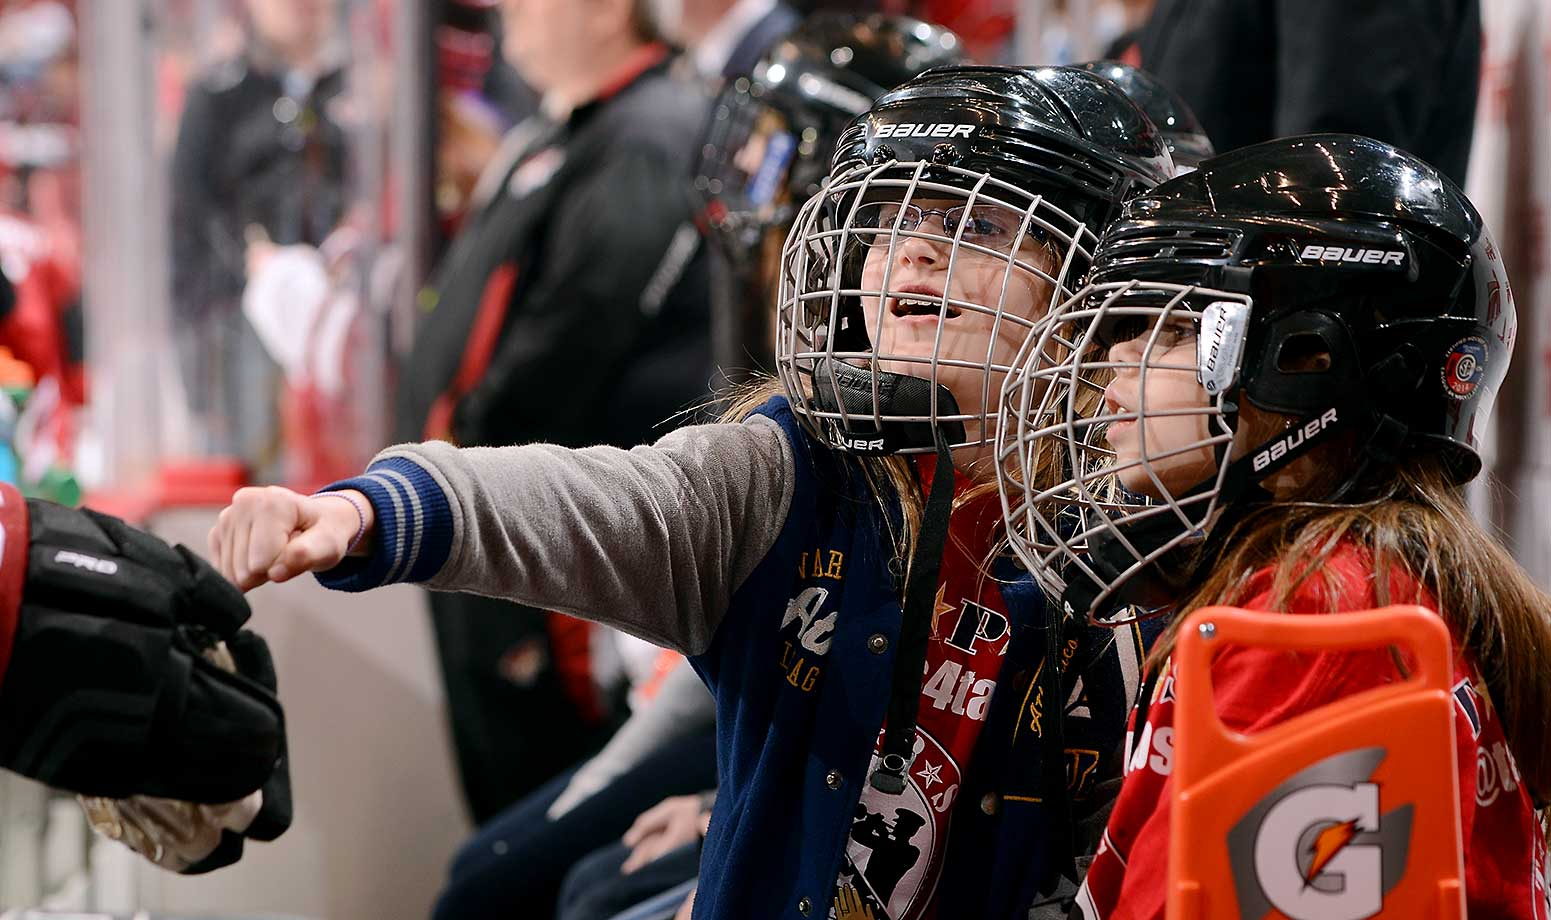 A youth hockey player fist bumps a Coyotes player before the start of the game between Arizona and the Los Angeles Kings at Gila River Arena in Glendale, Ariz.